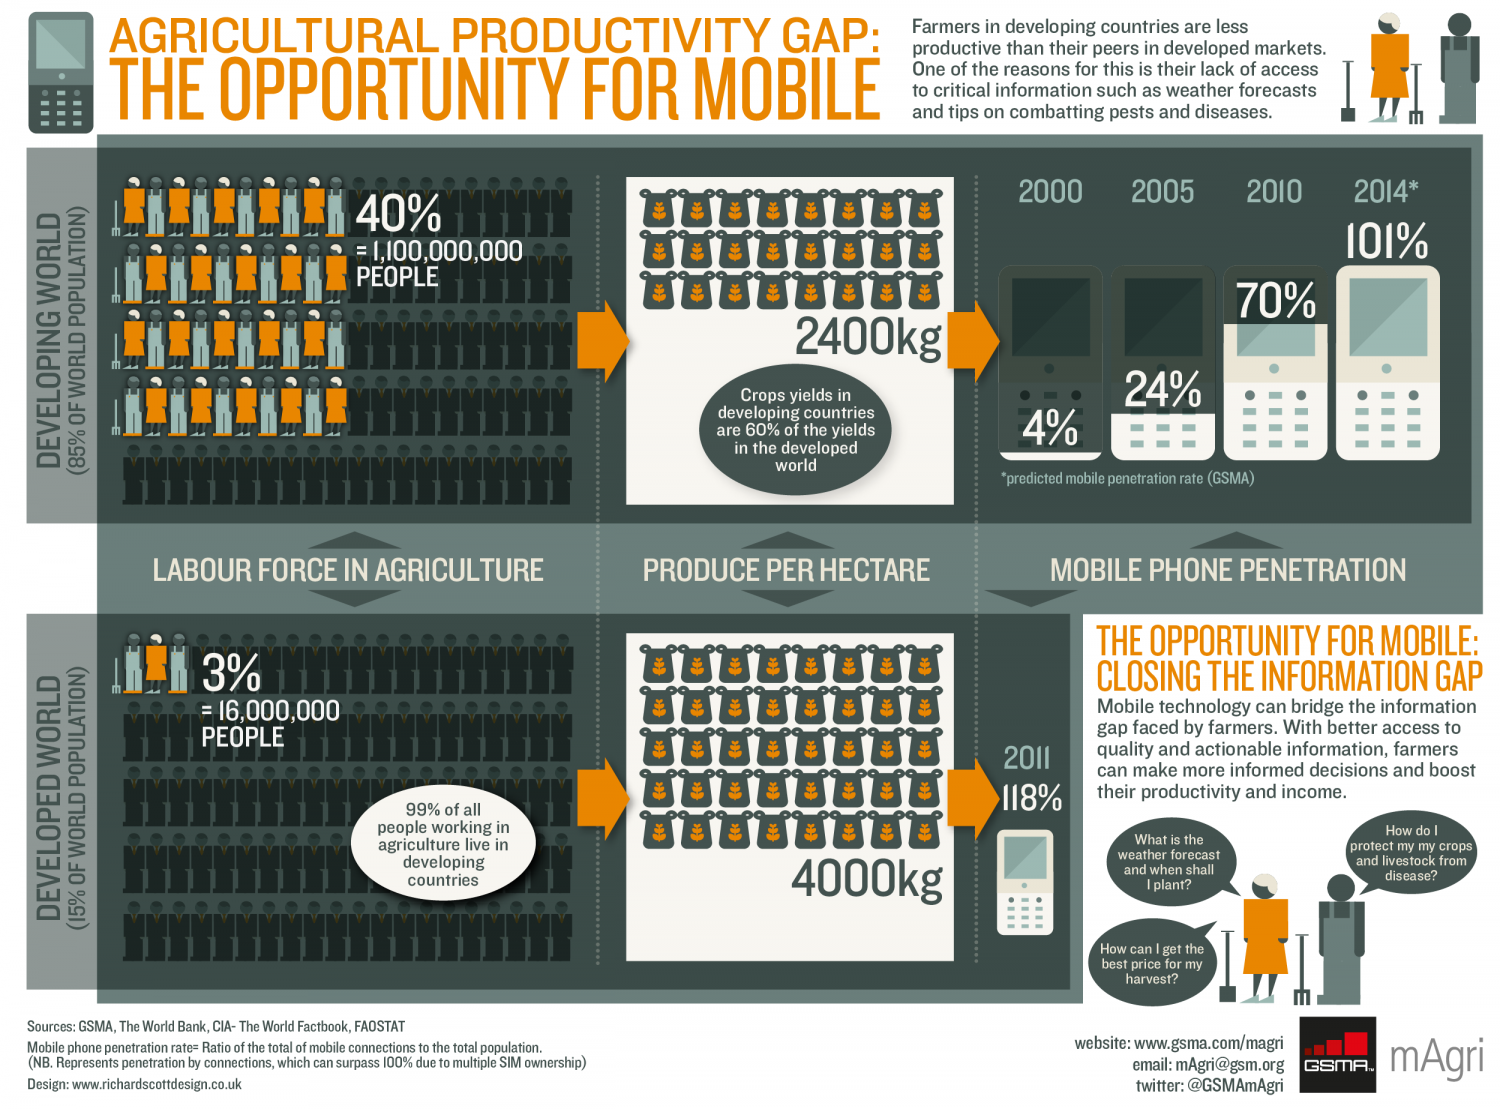 Agricultural Productivity Gap: The Opportunity for Mobile Infographic